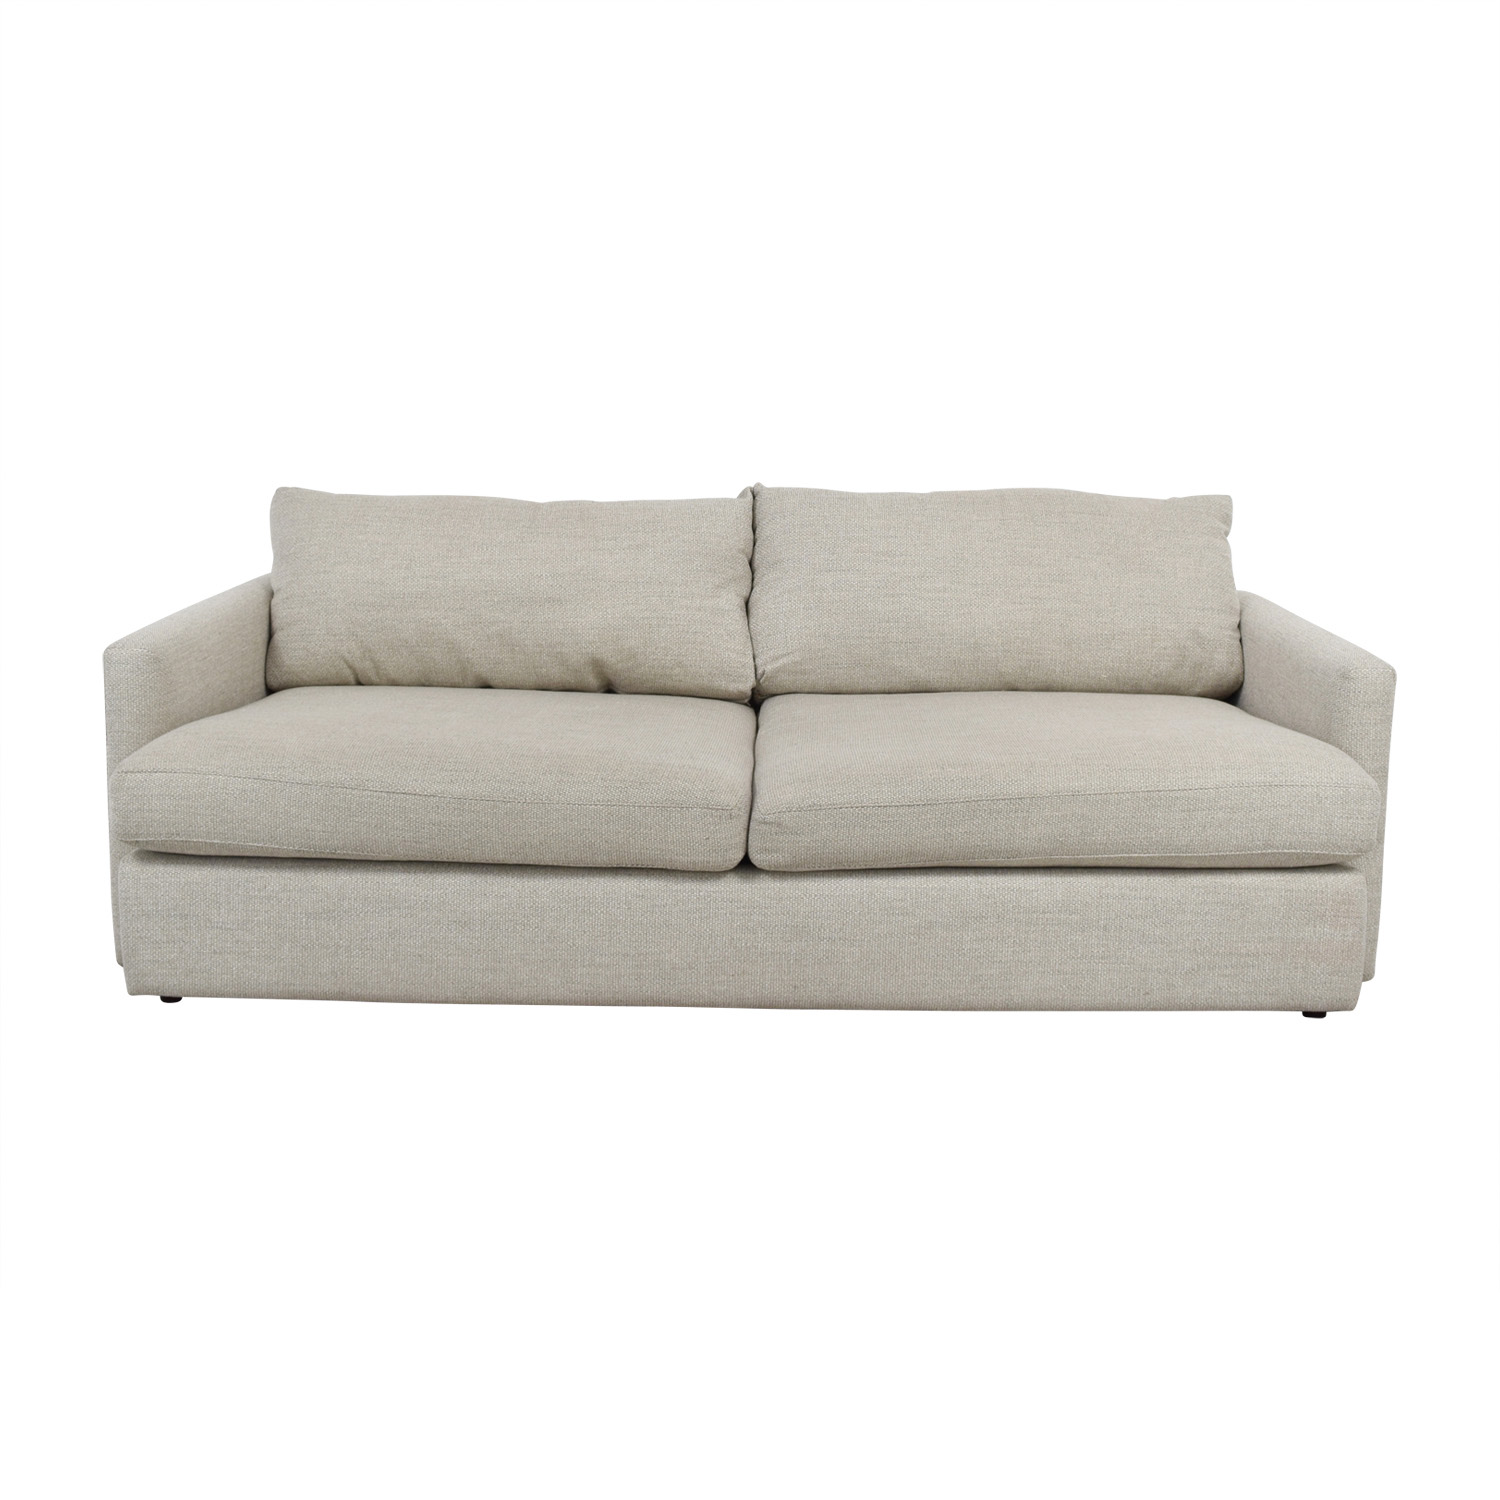 Crate & Barrel Crate & Barrel Lounge II Cement Grey Two Cushion Sofa coupon